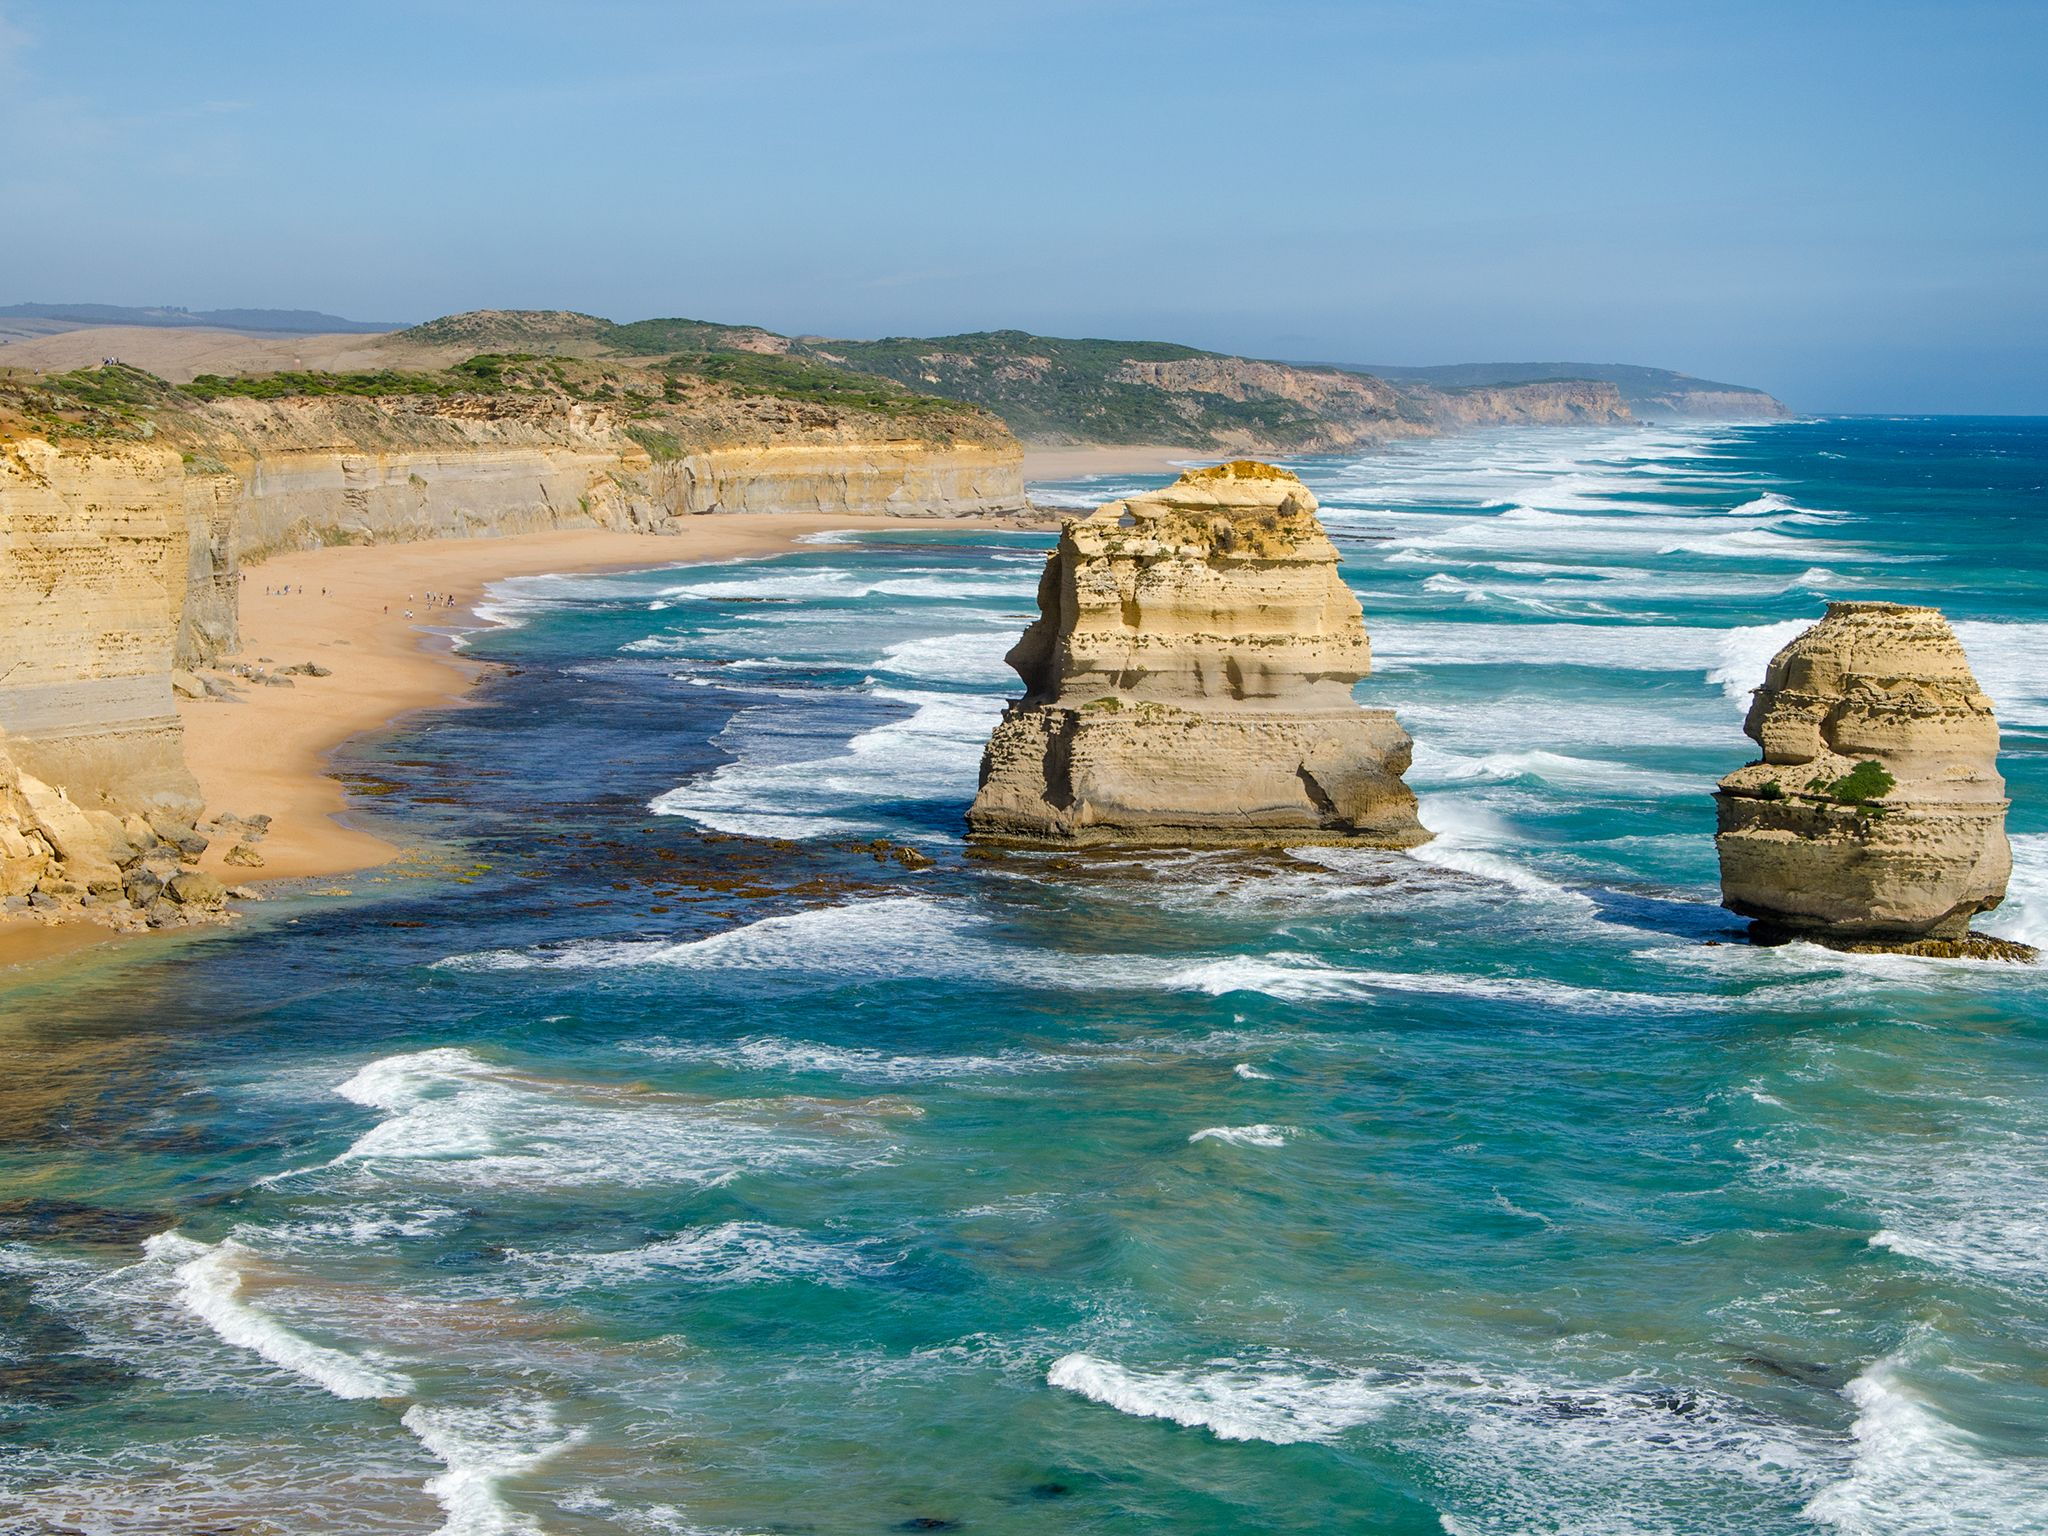 Rock formations off the coast of Australia